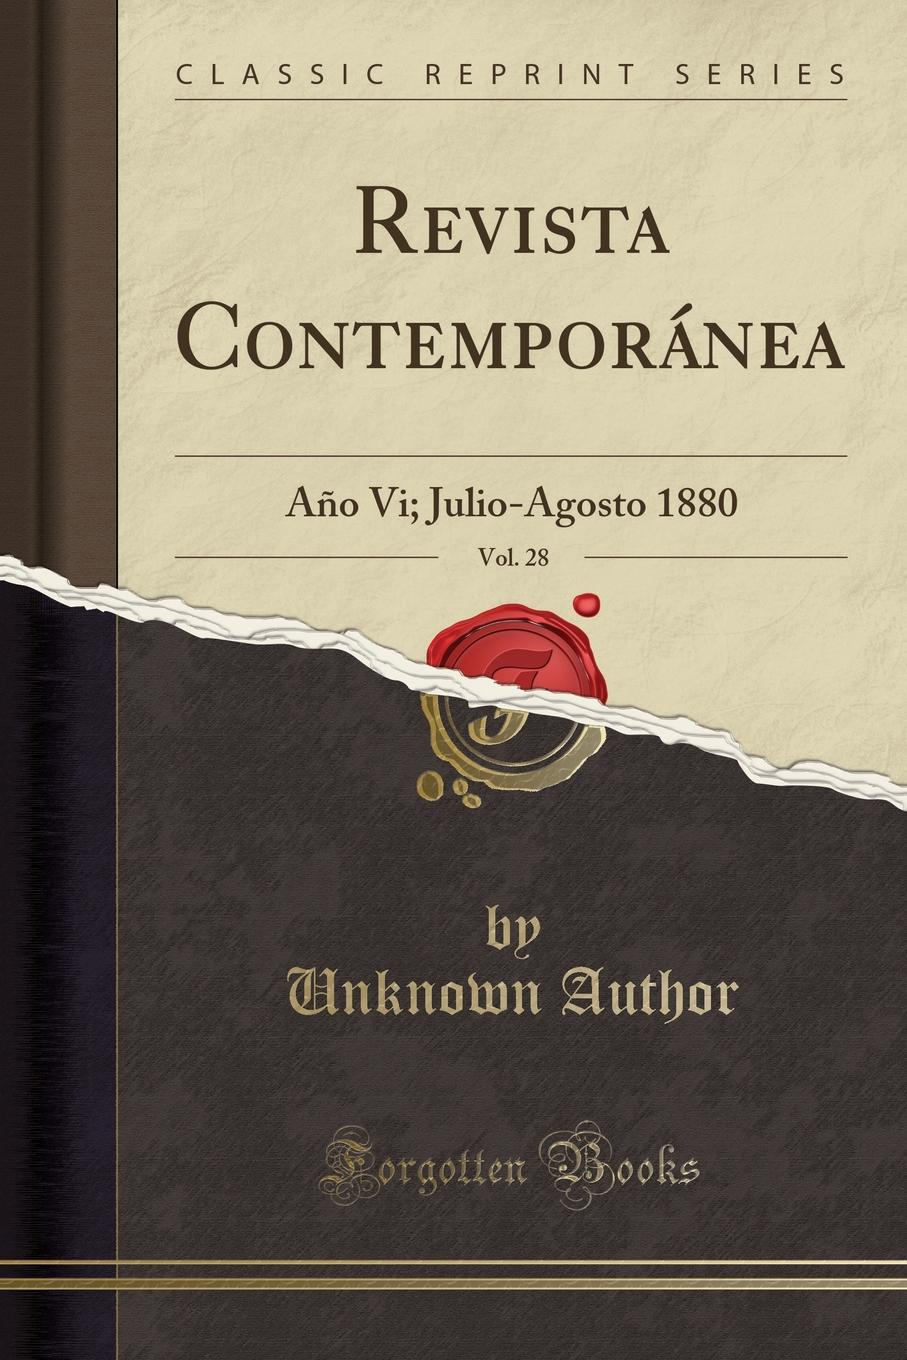 Revista Contemporanea, Vol. 28. Ano Vi; Julio-Agosto 1880 (Classic Reprint)